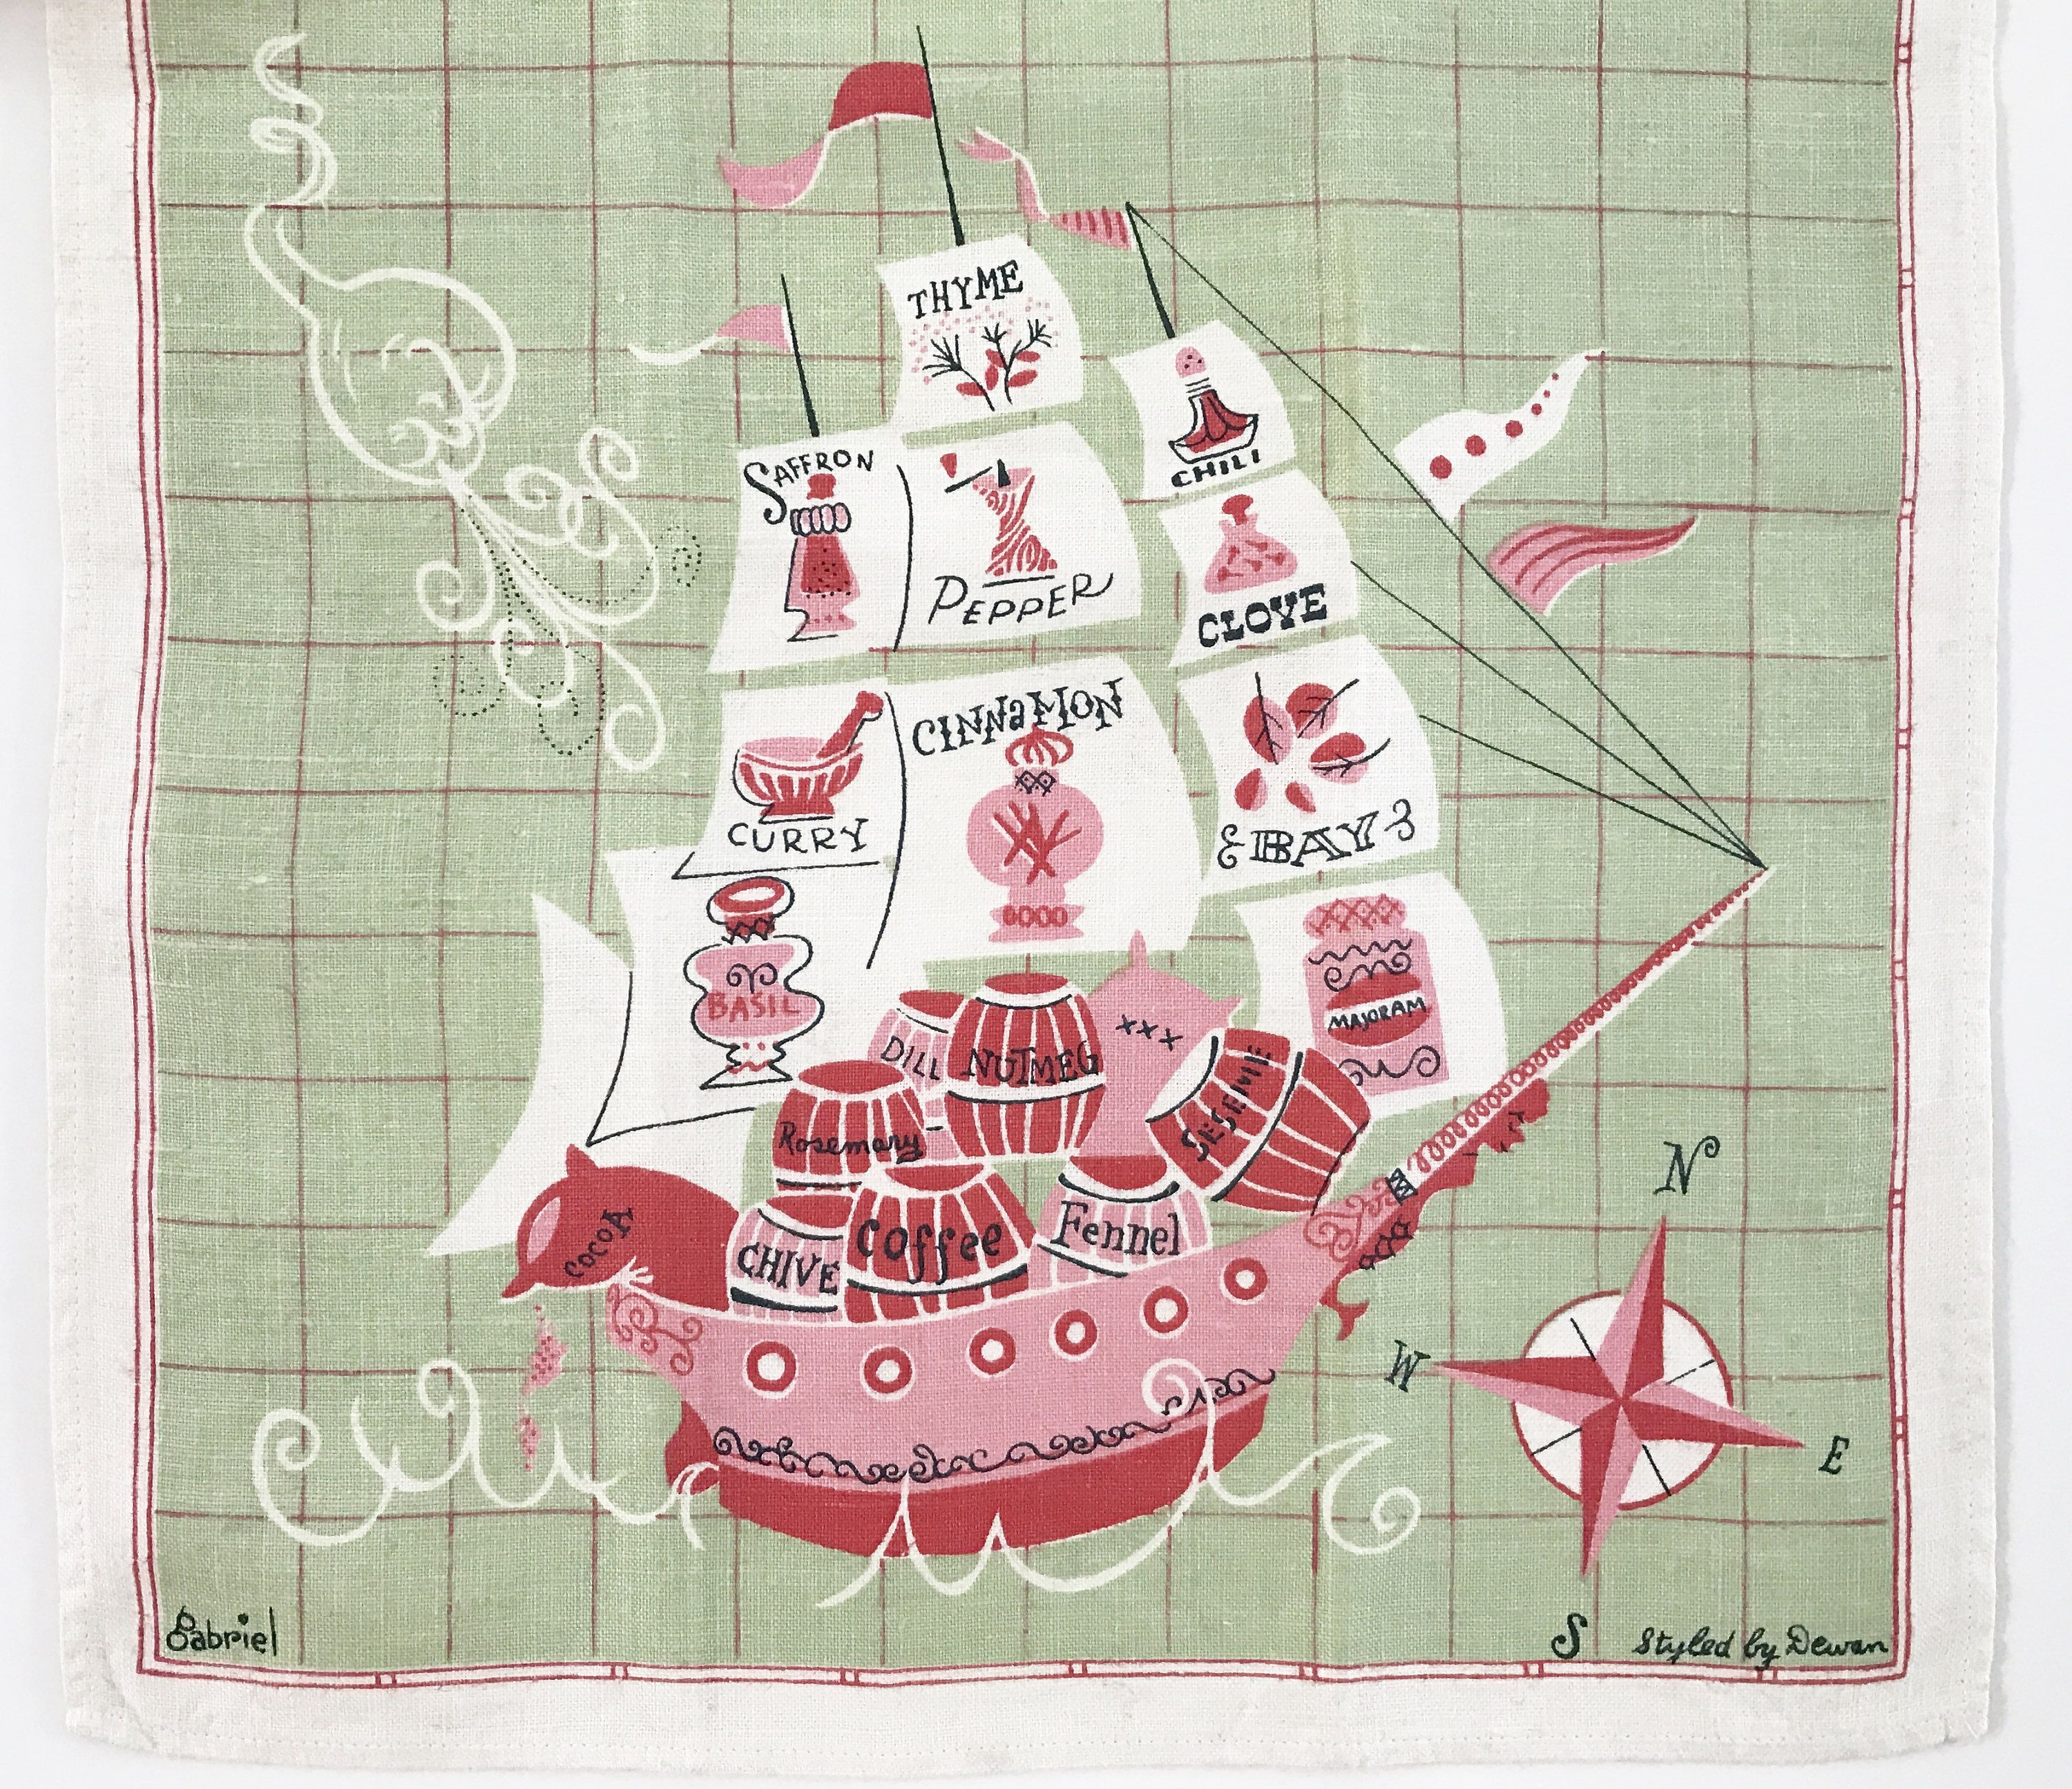 Vintage Tea Towel Spice Ship Boat Anthropomorphic Sun Whale Compass Rose Wall Hanging Textile Designer Gabriel by NeatoKeen on Etsy